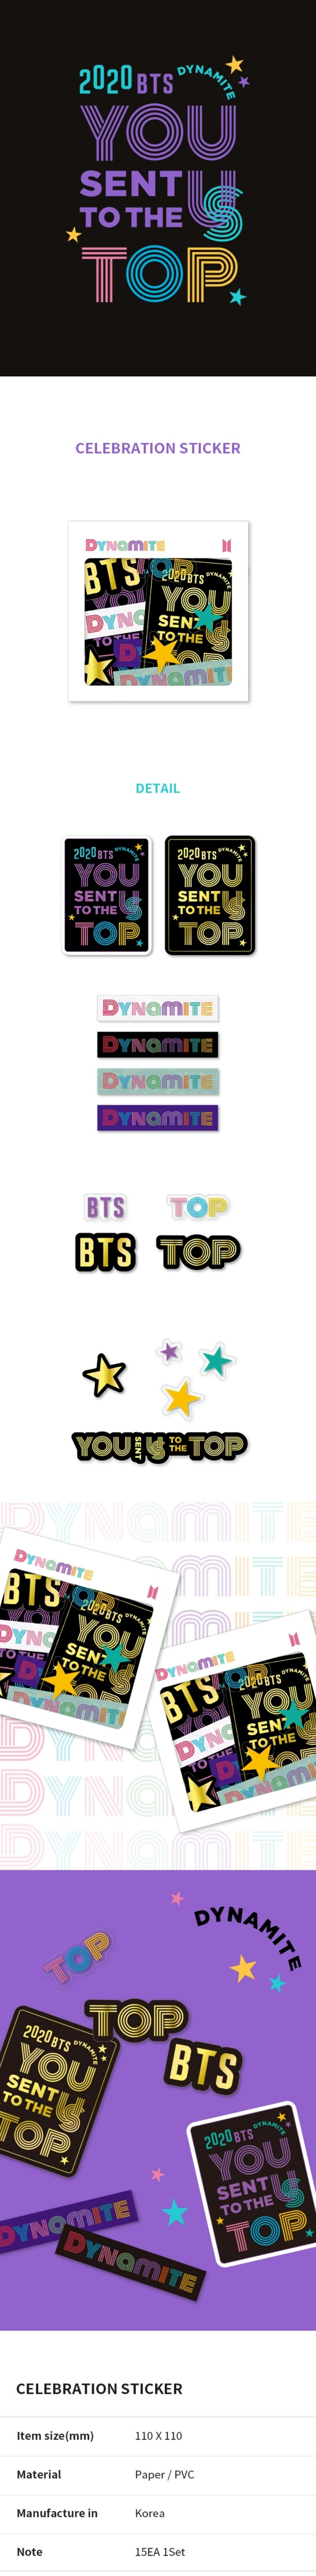 BTS Dynamite Celebration Oficial Merchandise - Celebration Sticker